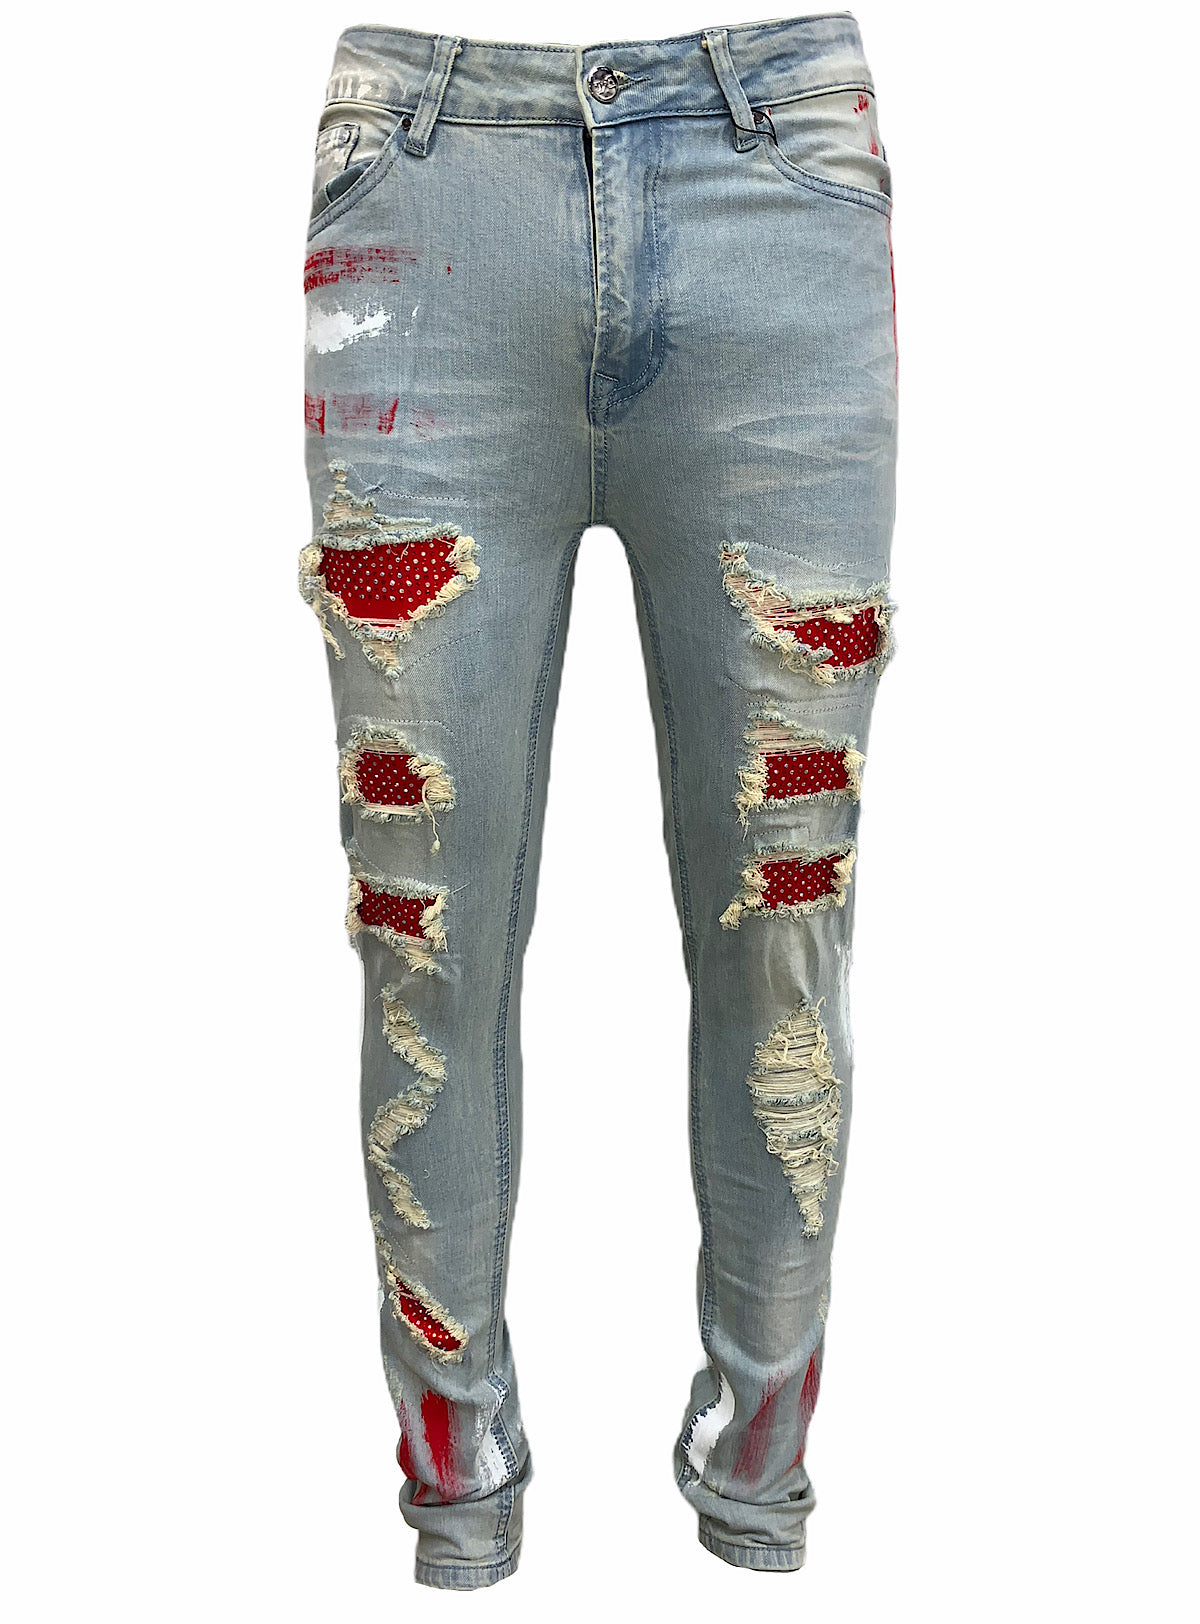 DNA Jeans - Stones and Paint - Red/White Multi Stones